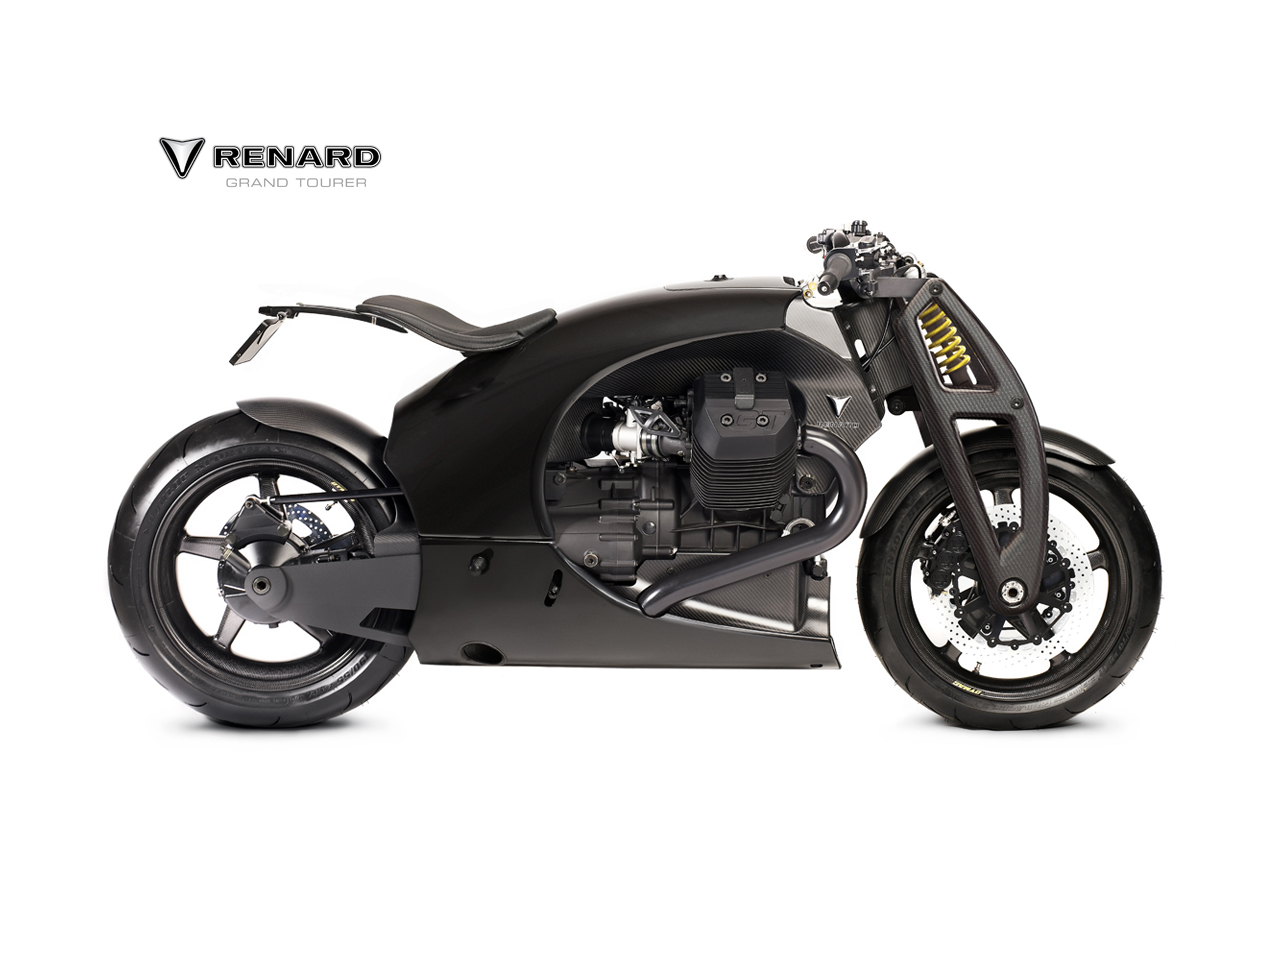 Renard Motorcycle. Renard+Grand+Tourer+2012+01